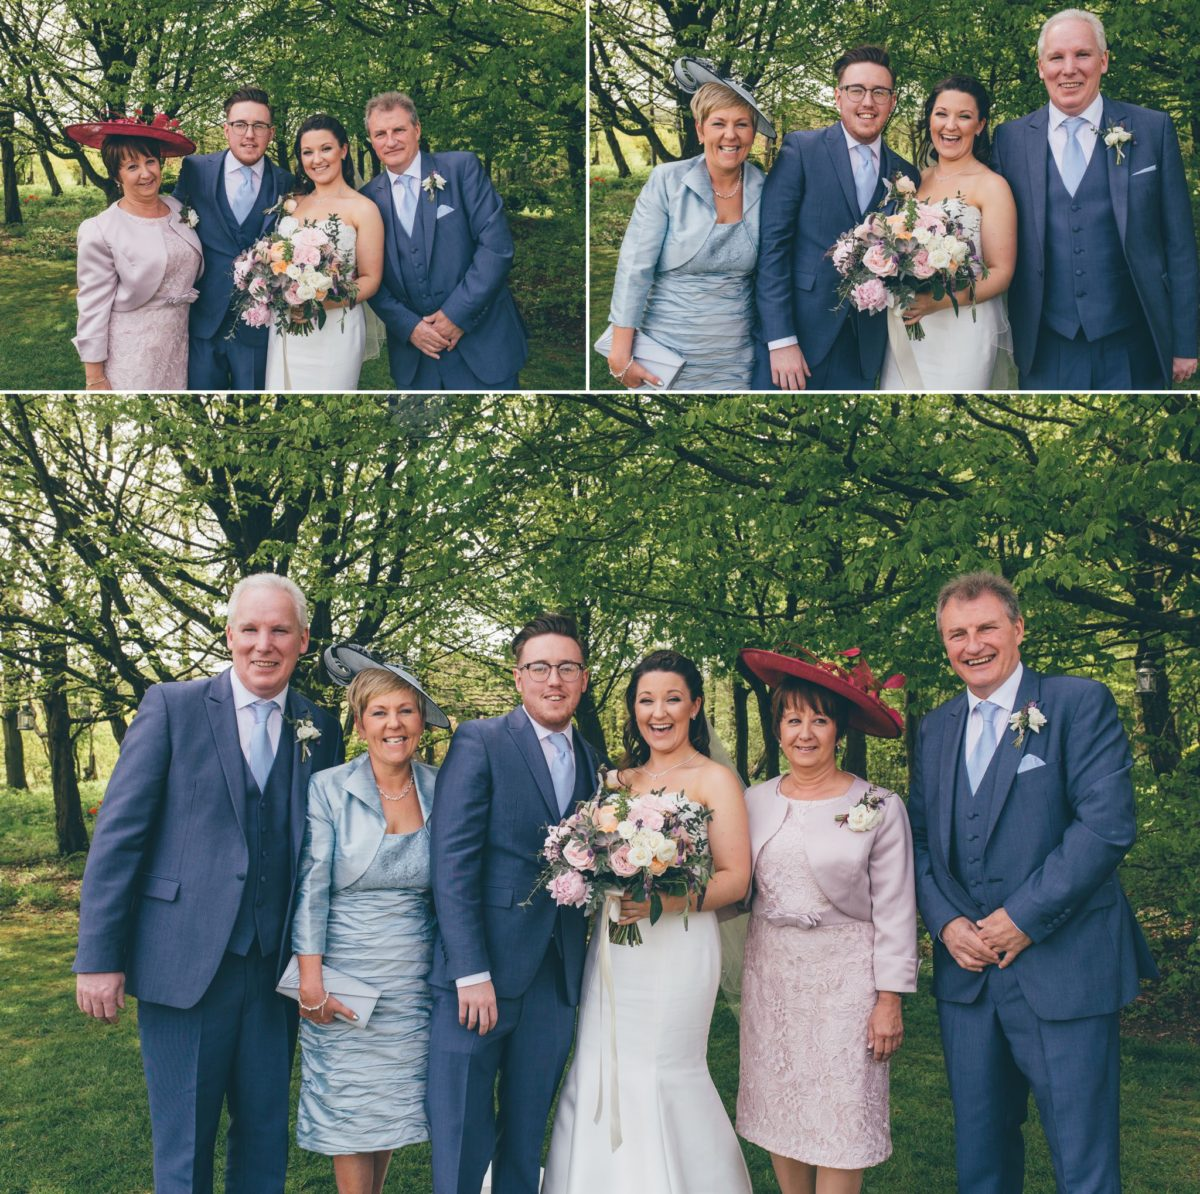 cripps_barn_gloucesterhsire_welsh_wedding_photographer_rachel_lambert_photography_jordan_amy_ 76